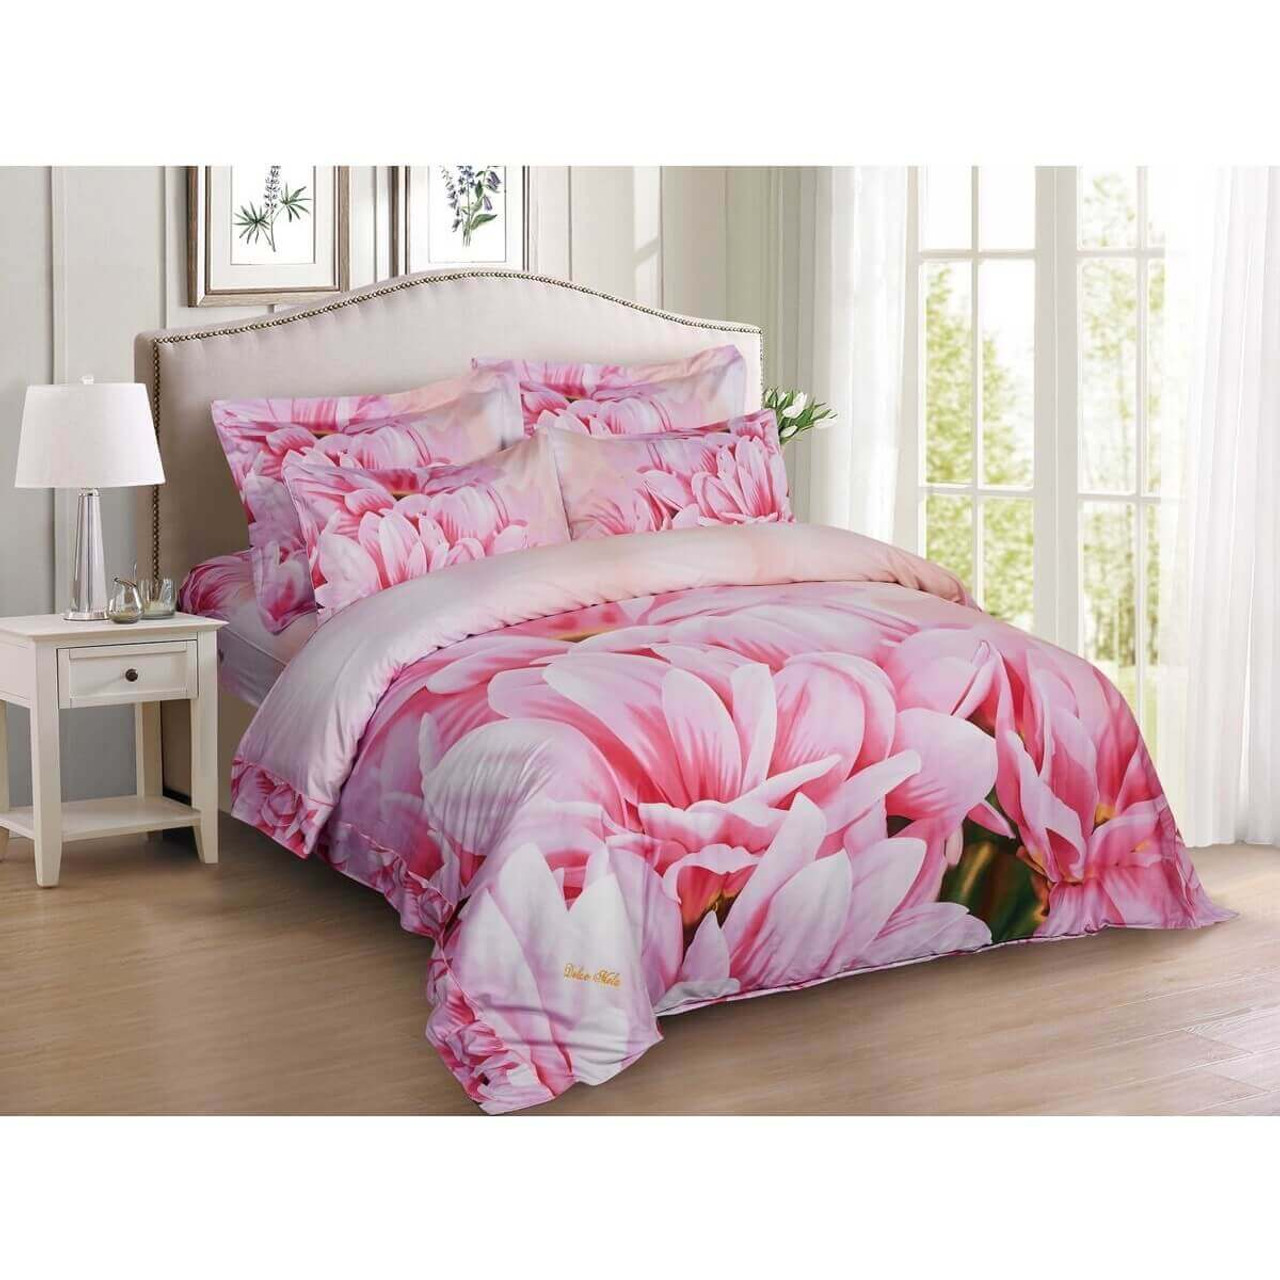 Floral Bedding, Dolce Mela - May DM701K  Dropship